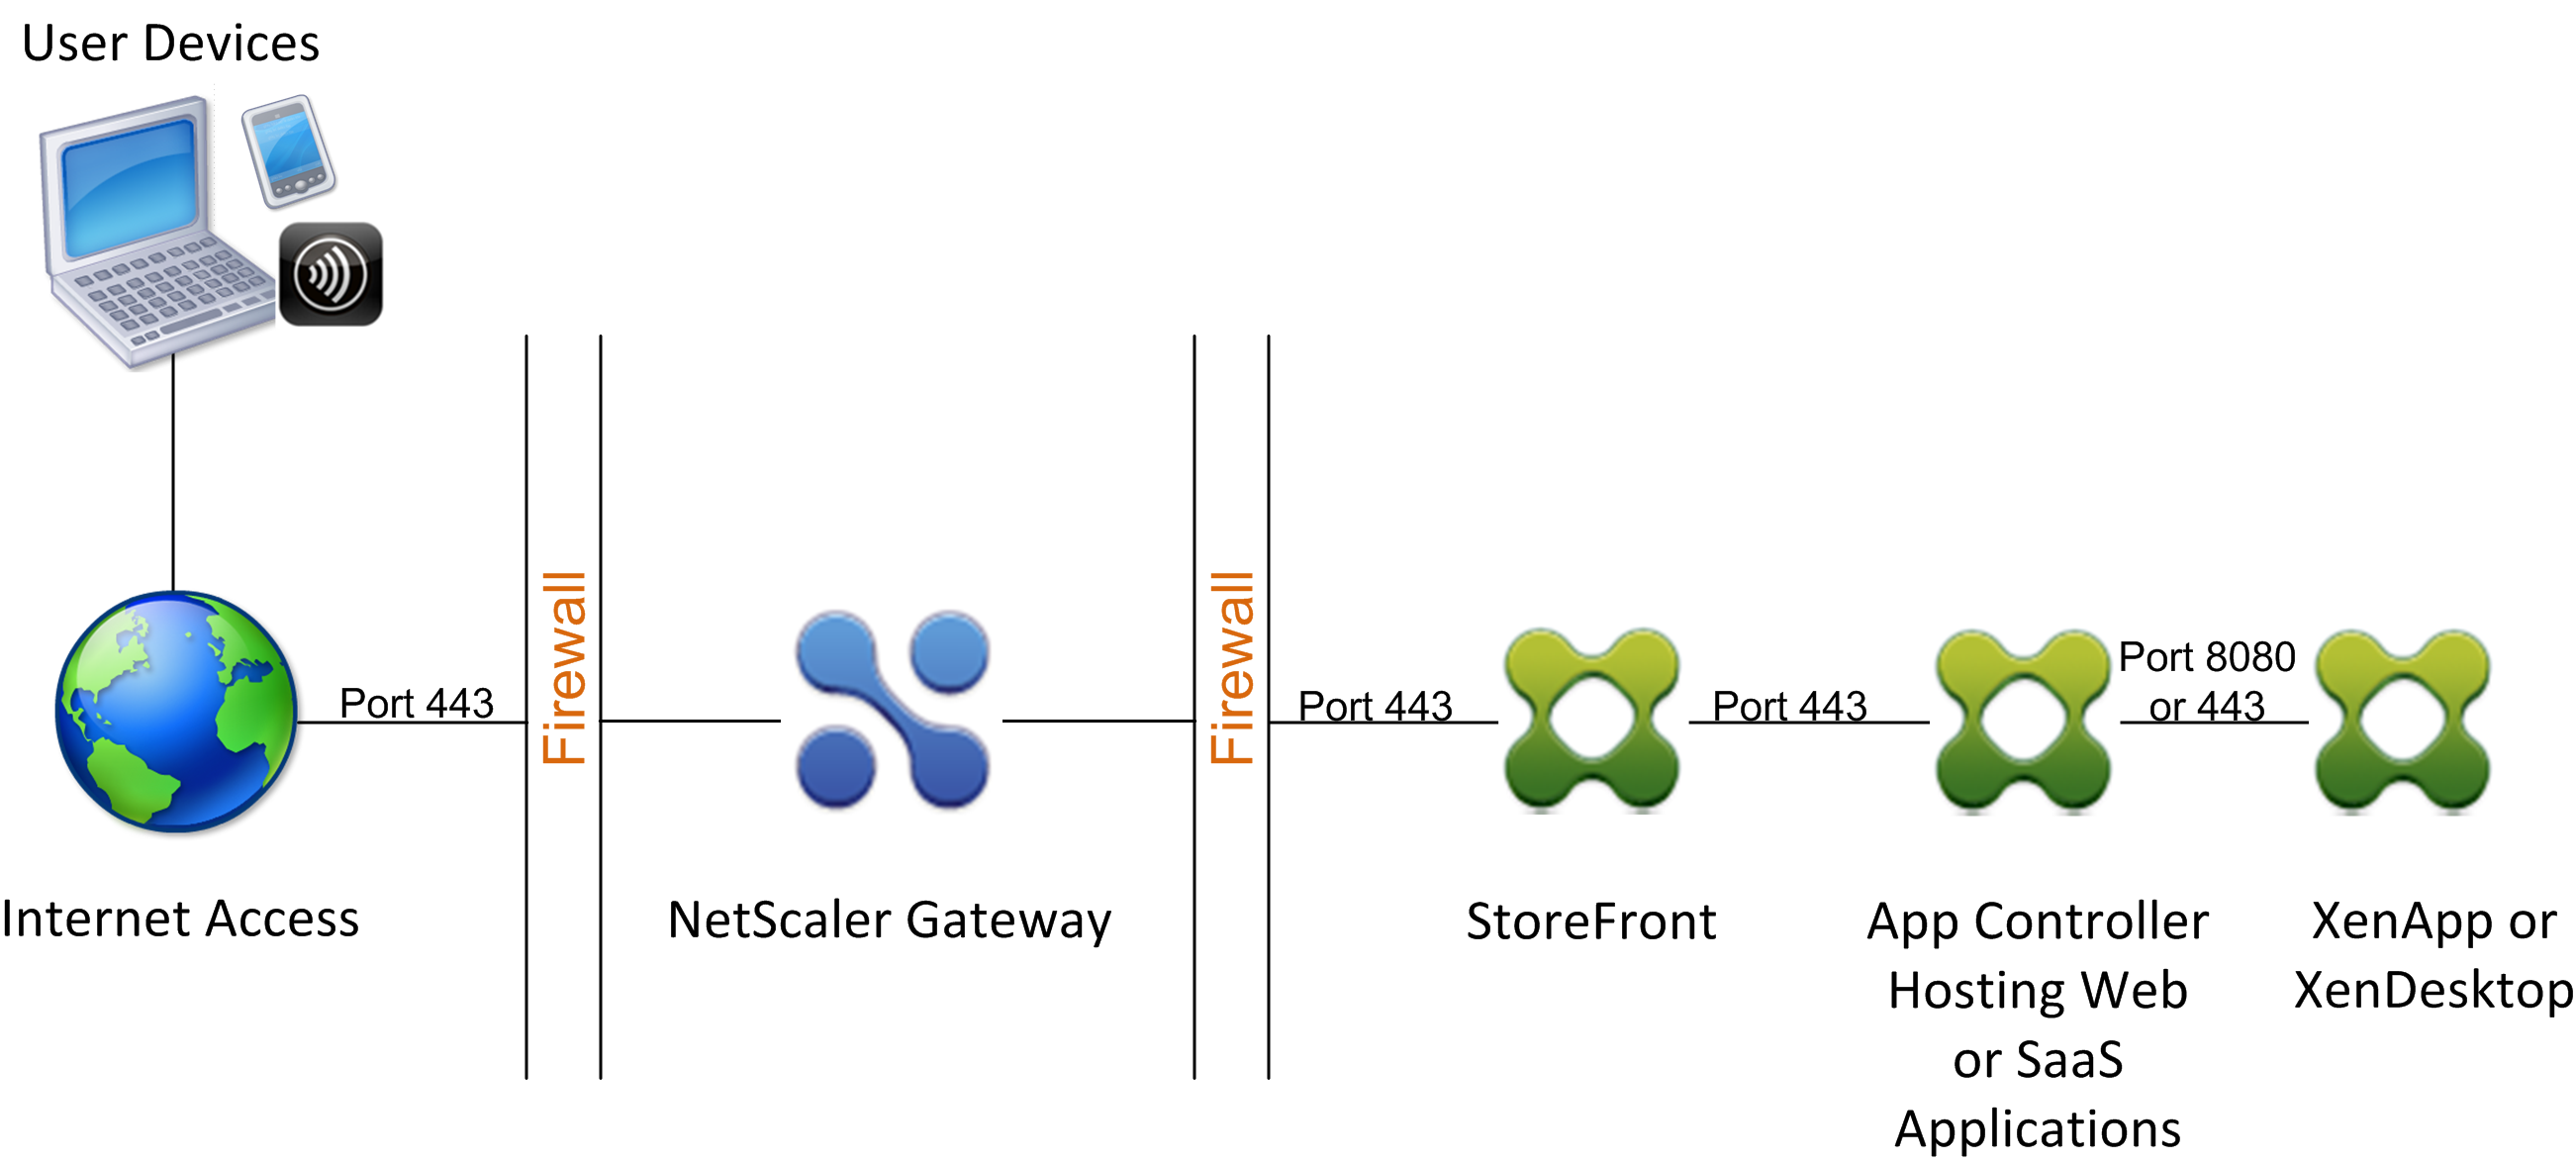 Deploying Citrix Gateway with StoreFront in Front of Endpoint Management